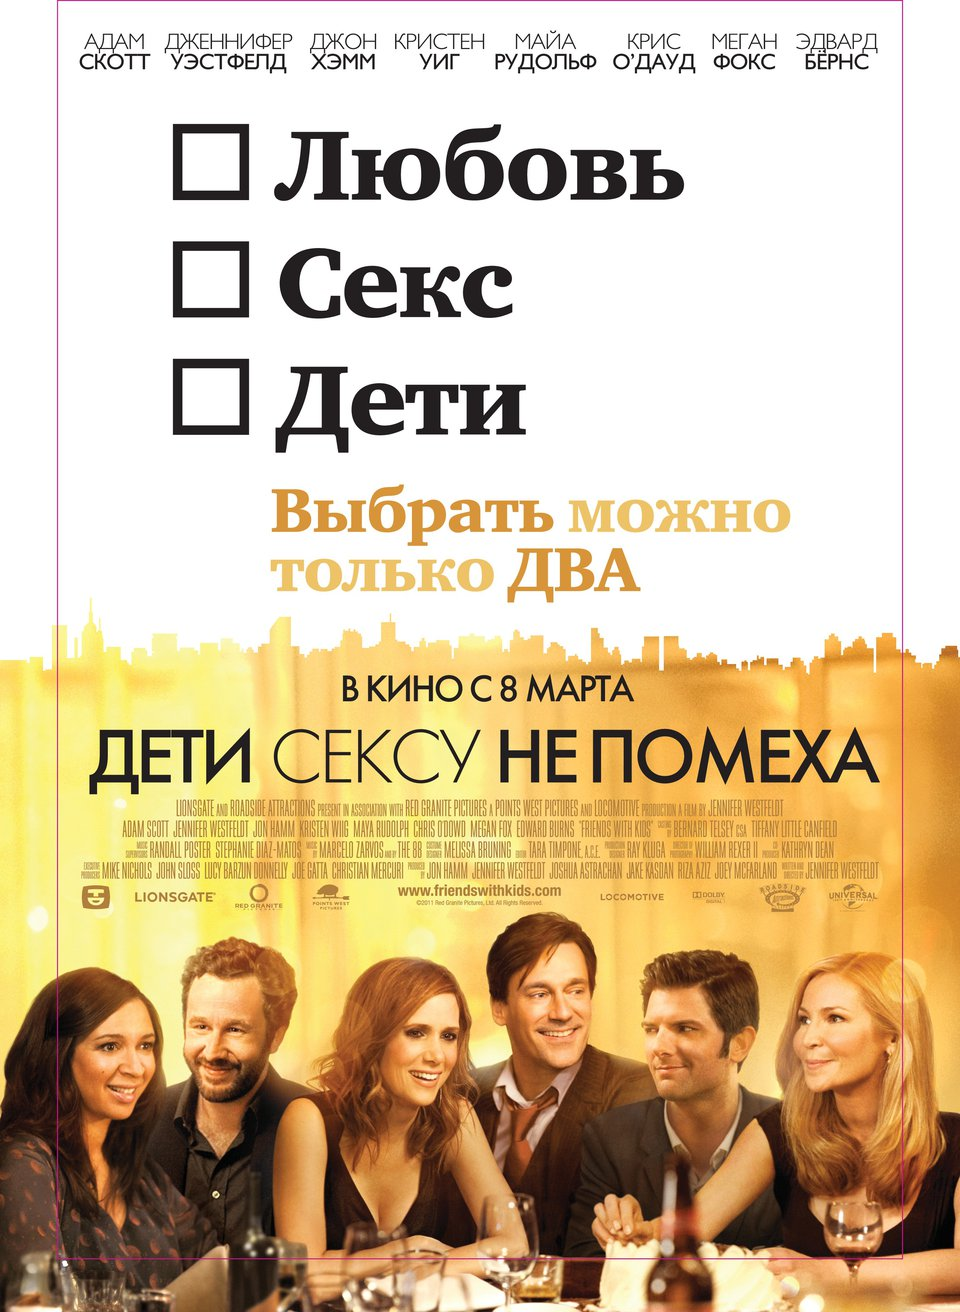 Дети сексу не помеха / Friends with Kids (2011) Blu-Ray 1080p USA